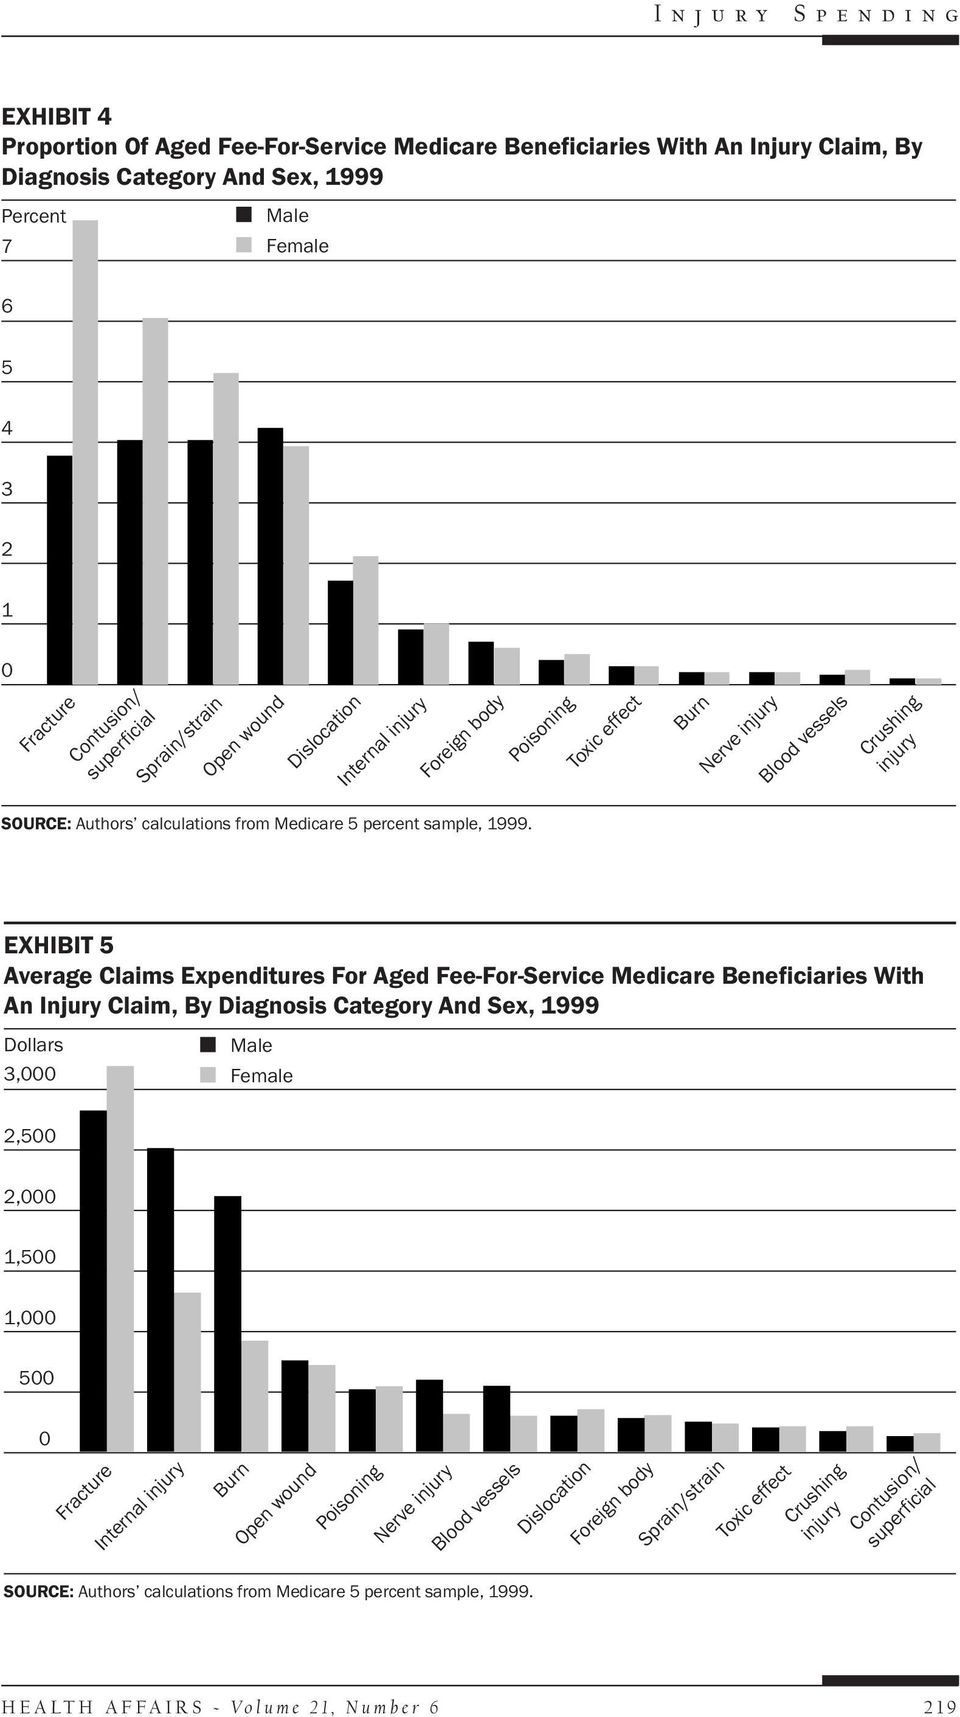 Expenditures For Aged Fee-For-Service Medicare Beneficiaries With An Injury Claim, By Diagnosis Category And Sex, 1999 Dollars 3,000 Male Female 2,500 2,000 1,500 1,000 500 0 Fracture